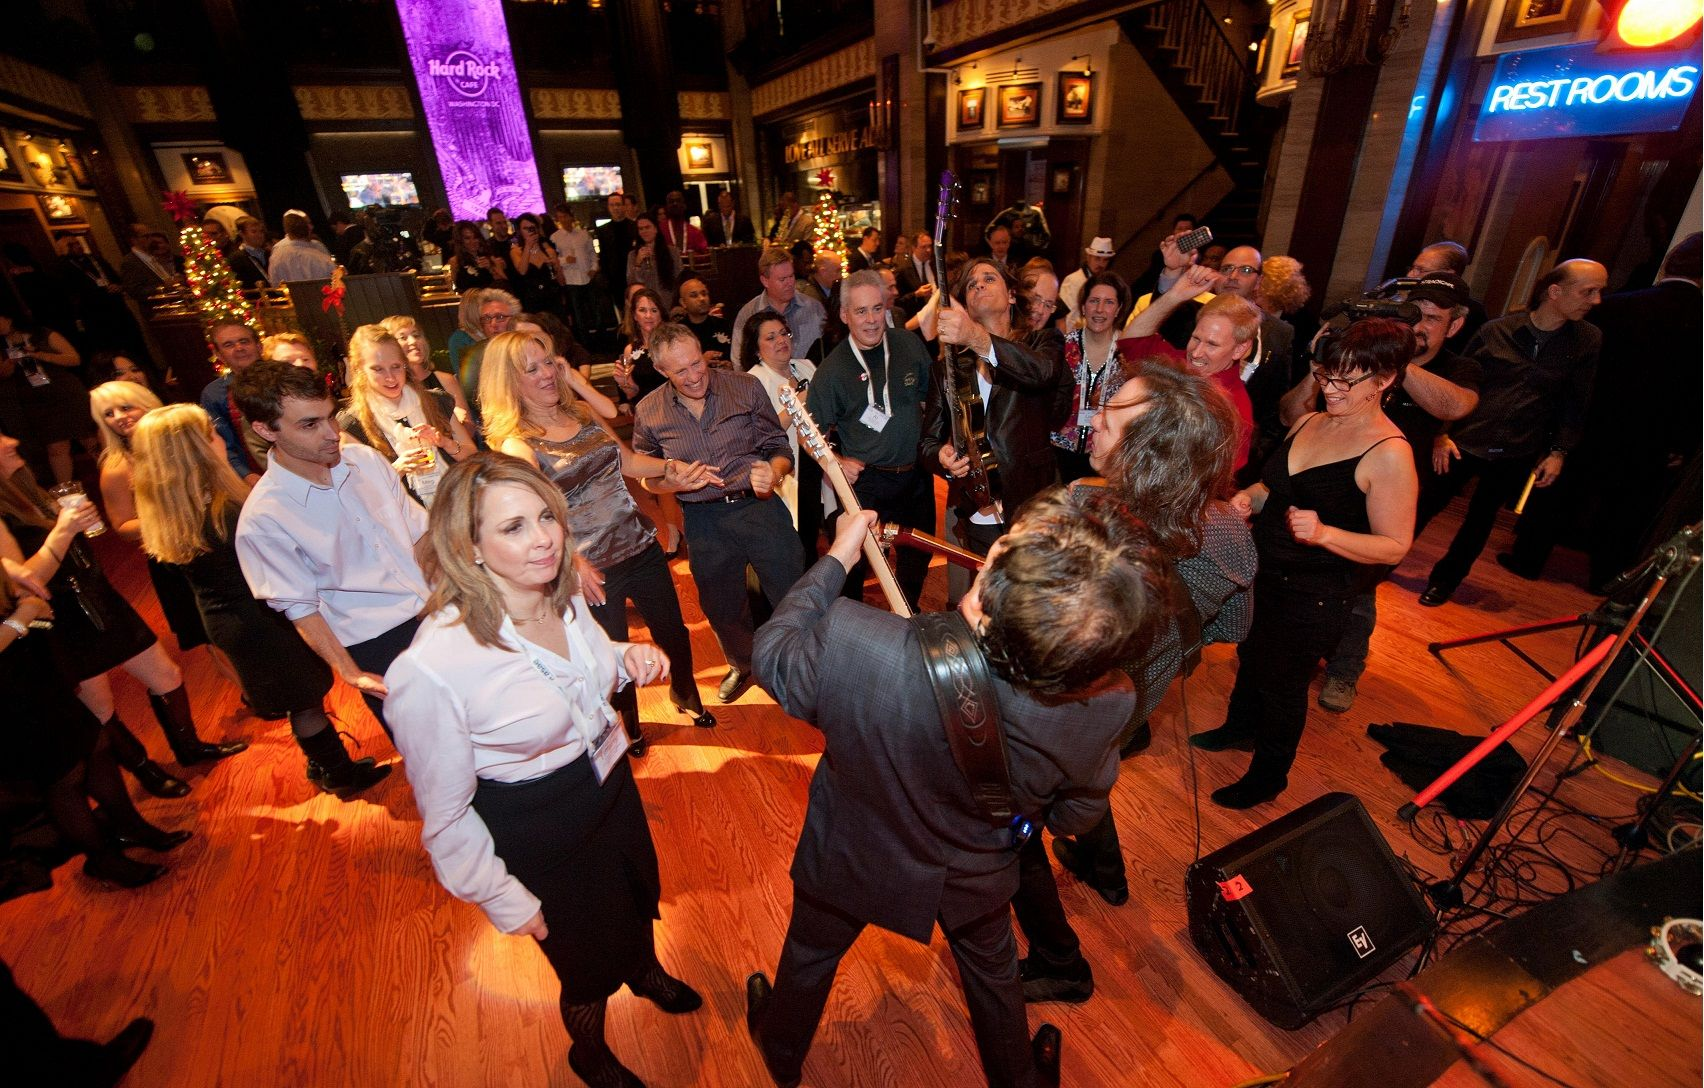 Celebrate your New Year's Eve Party at the hard rock hotel